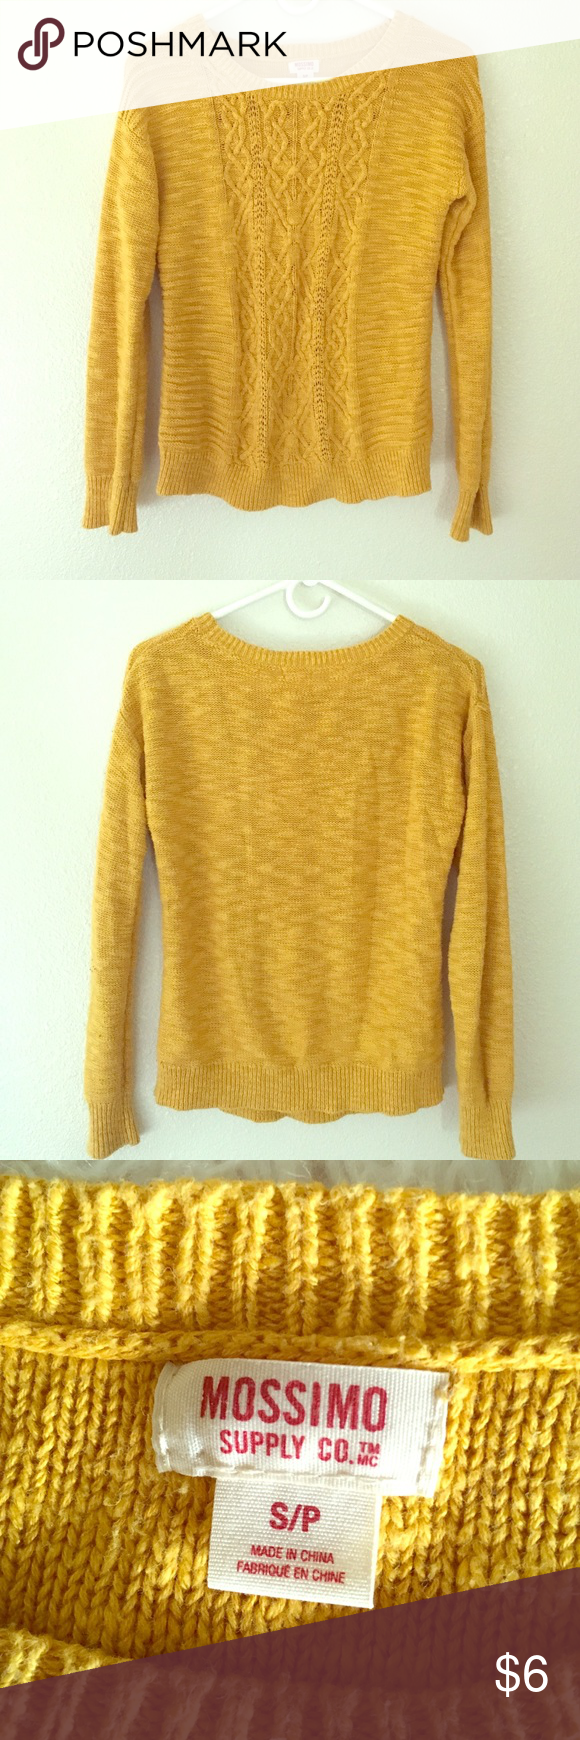 Mustard Yellow Cable knit Sweater | Cable knit sweaters, Cable ...